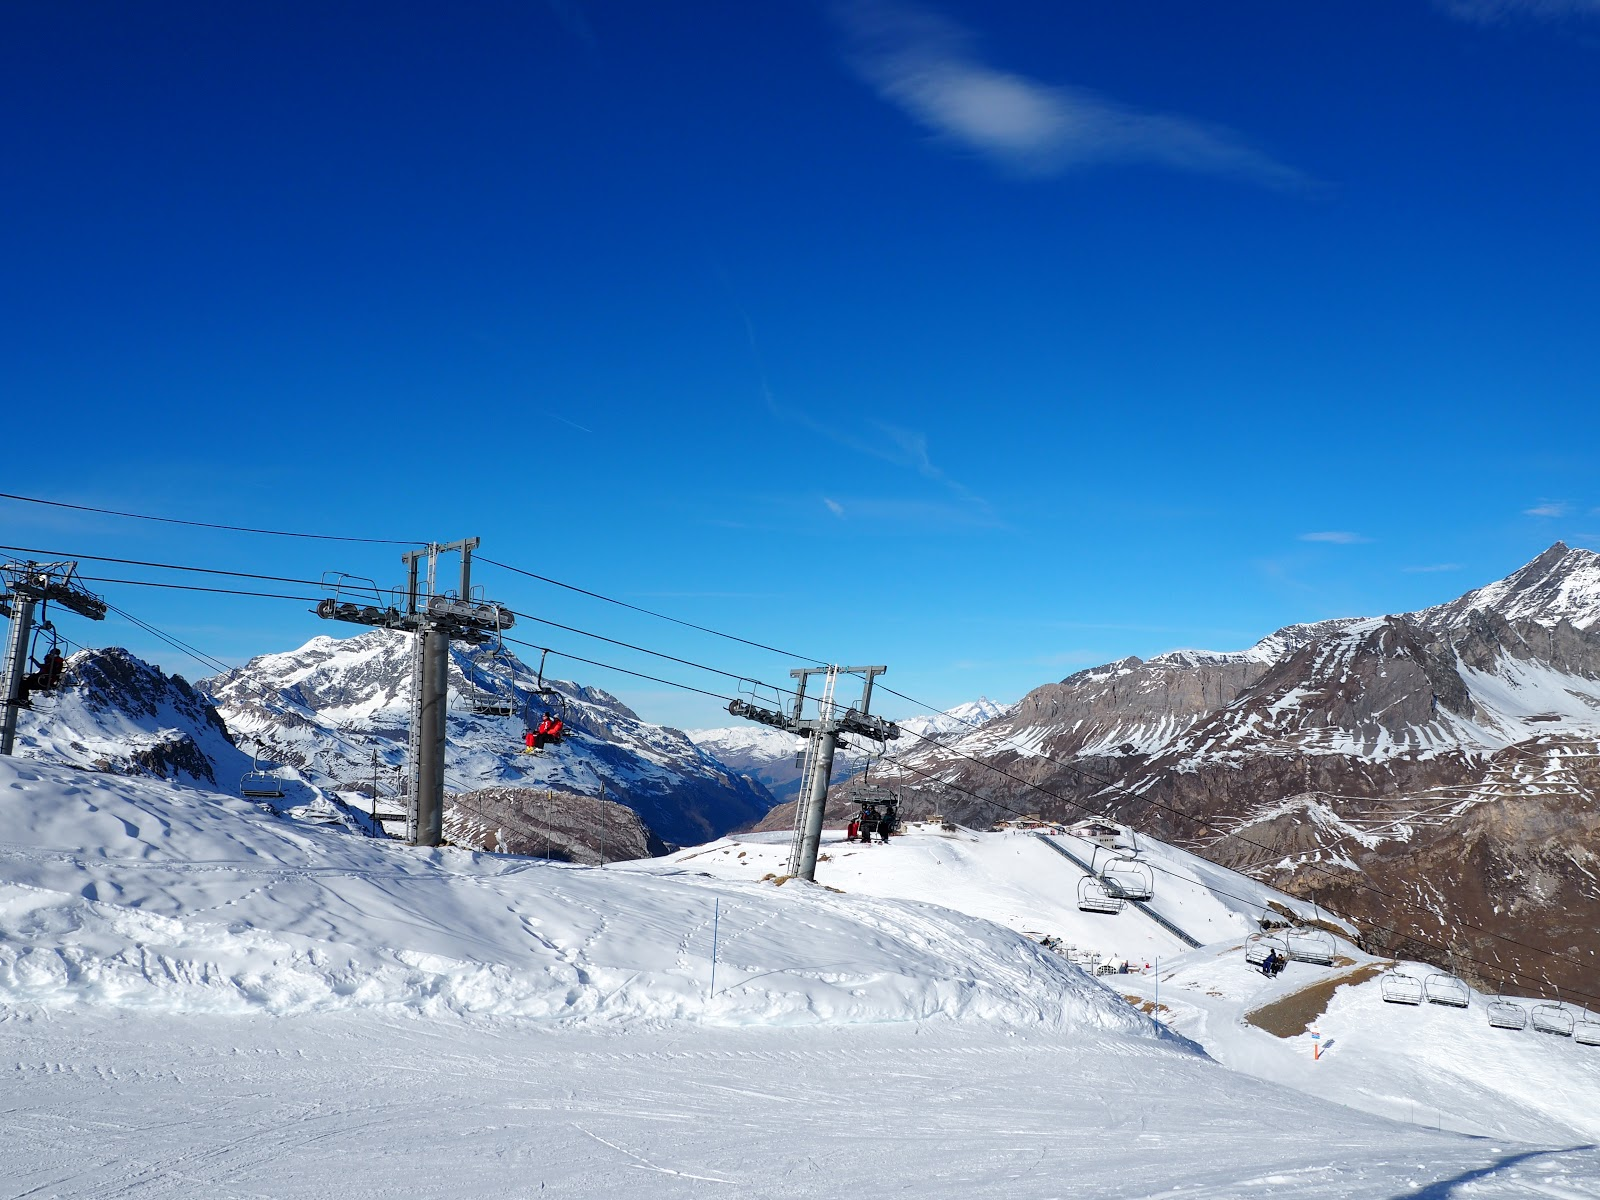 ski resort on top of a snowy mountain in Val d'isere, France